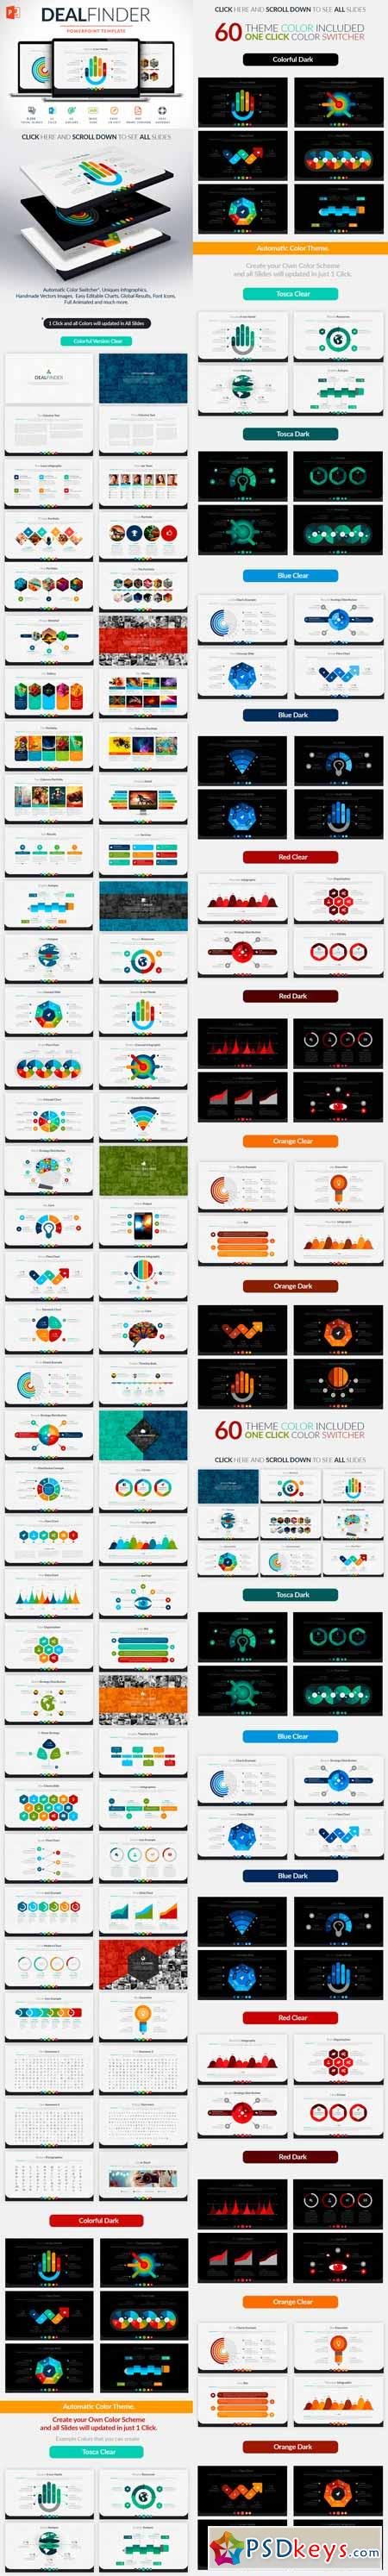 Deal Finder Powerpoint Template 299329